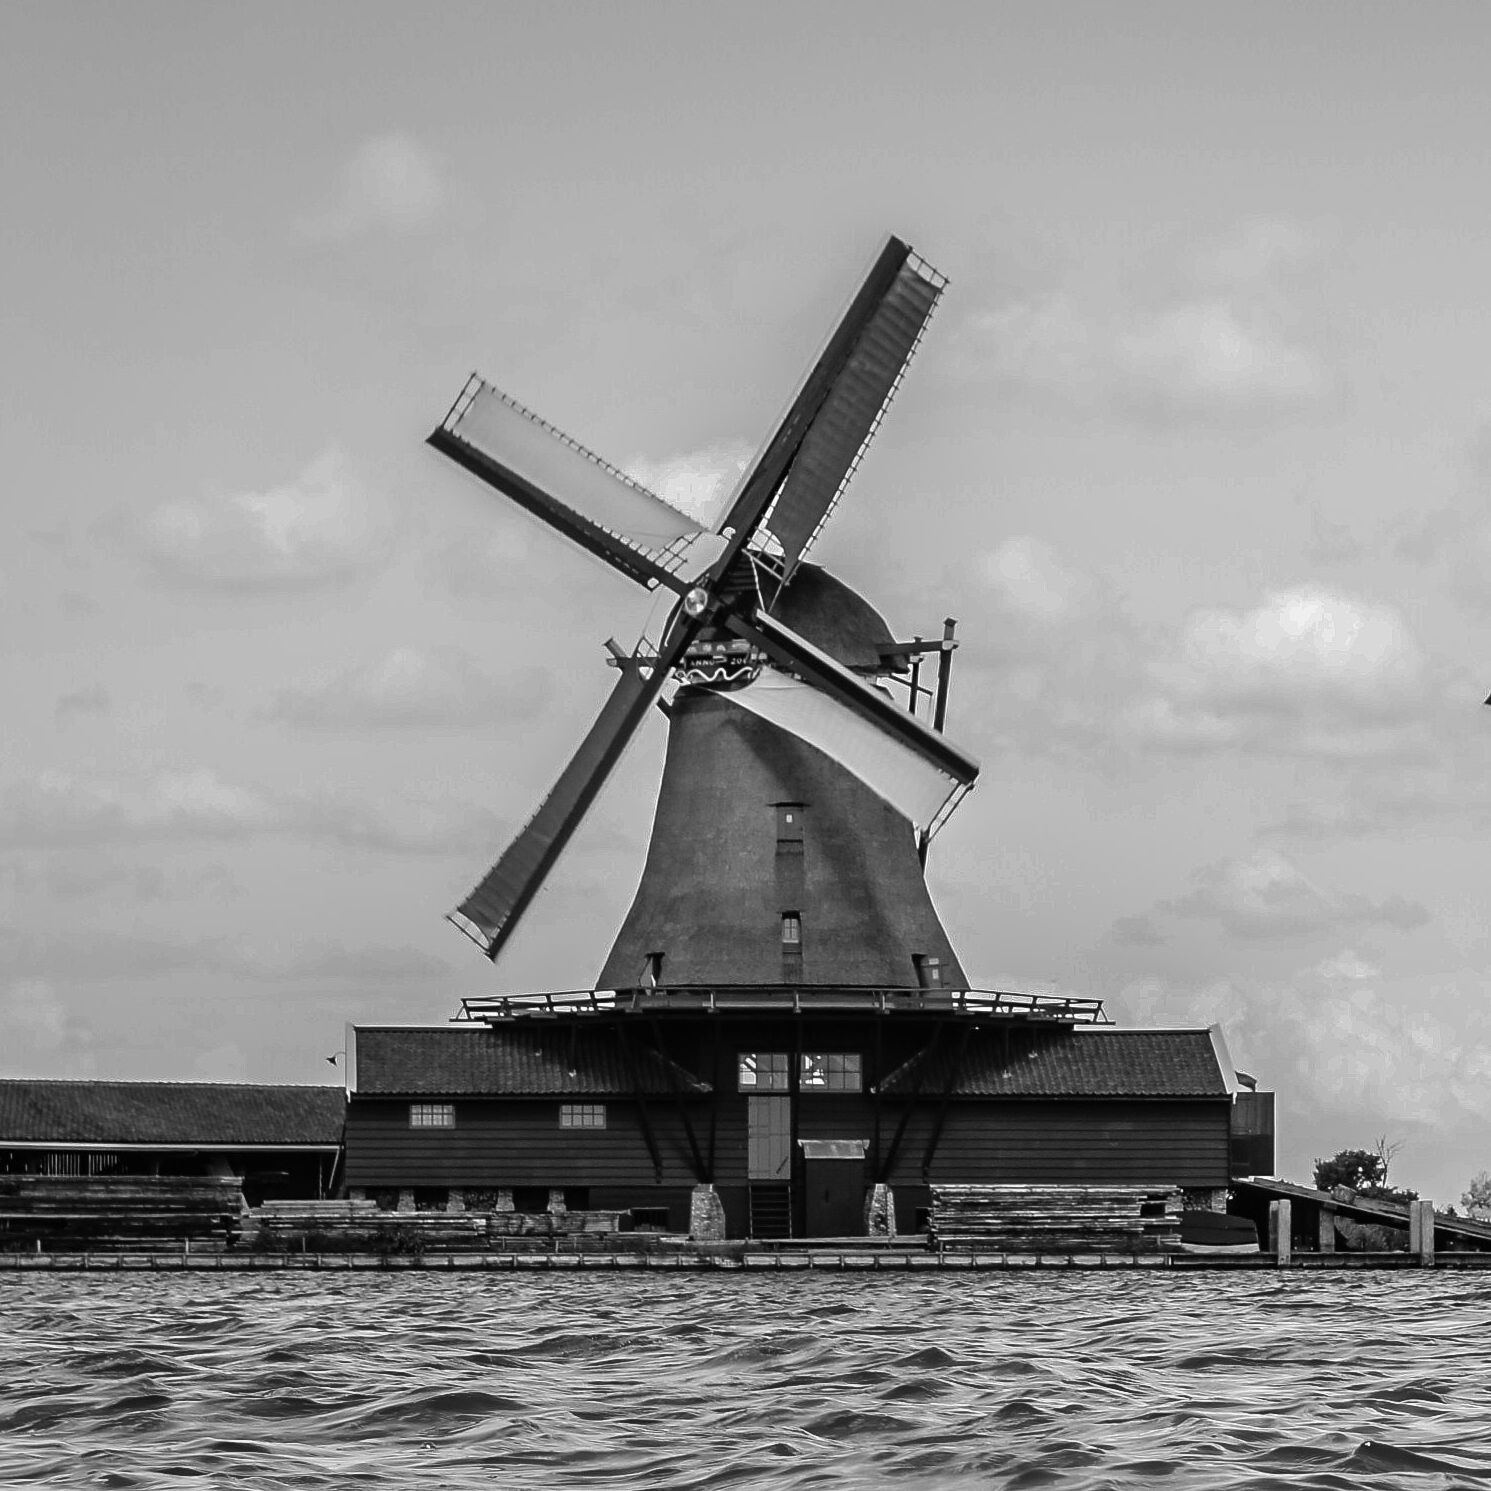 Windmills are a classic example of the circular economy